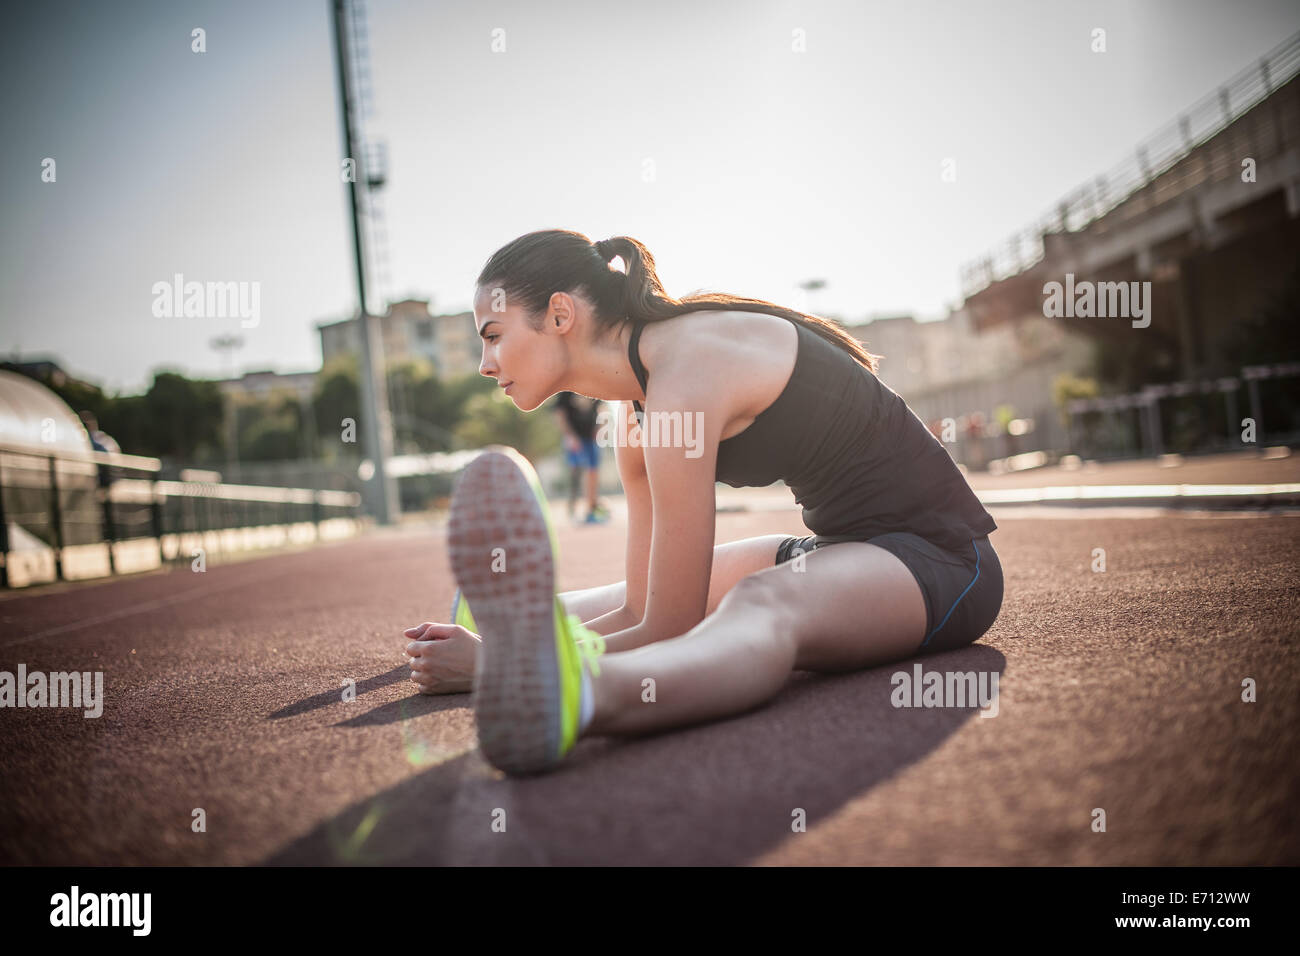 Woman sitting on floor stretching legs Stock Photo